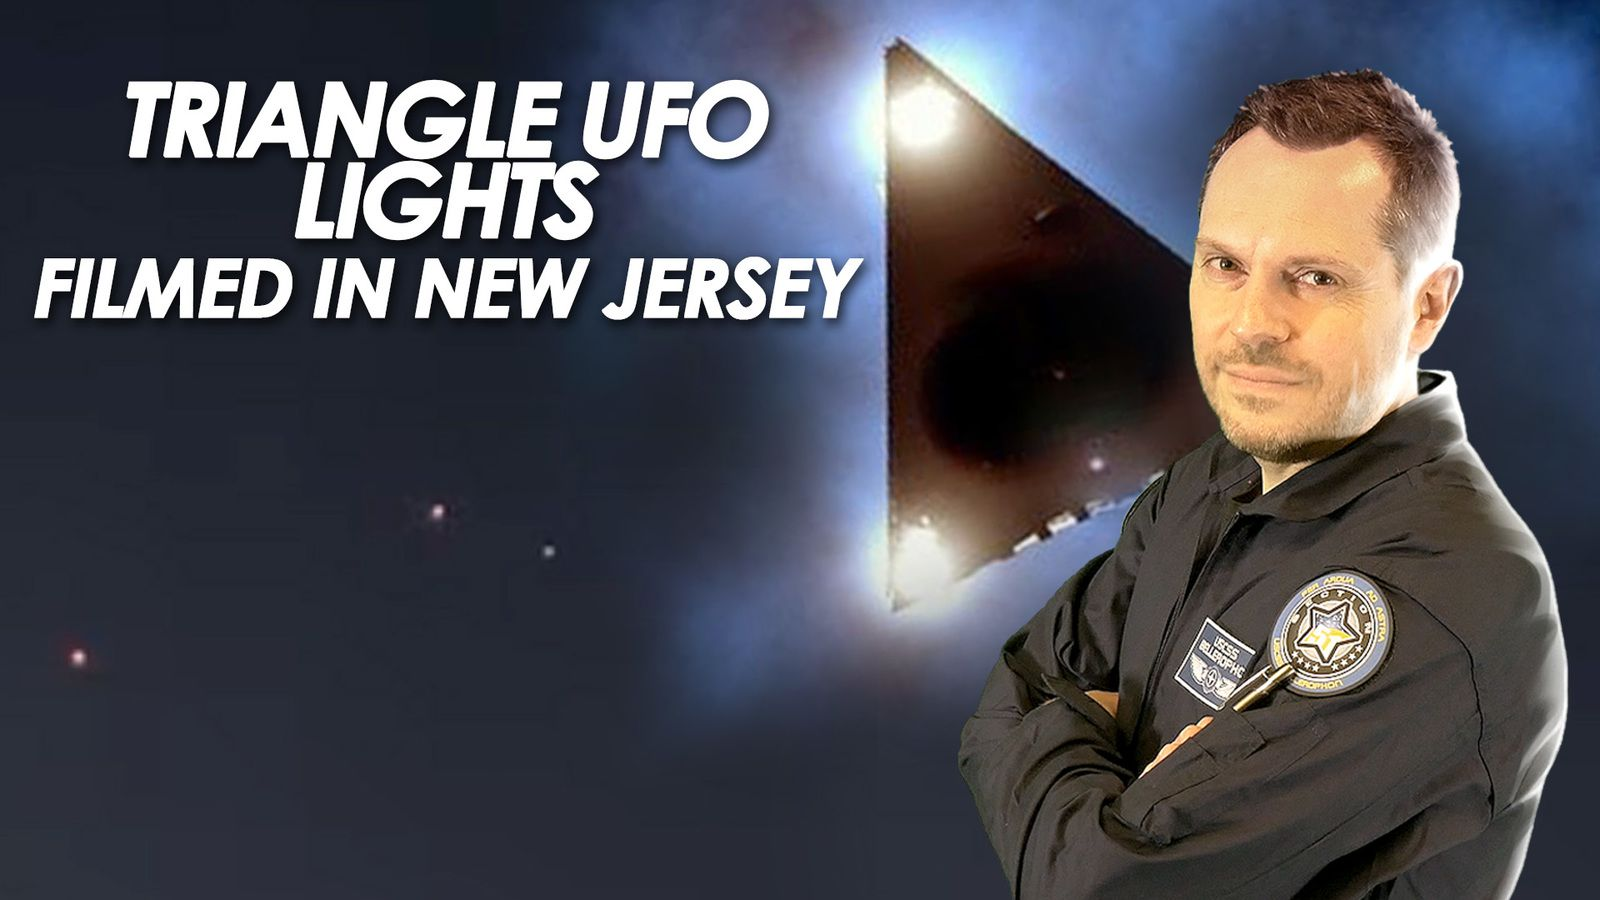 👽 Triangle UFO Lights Filmed in New Jersey